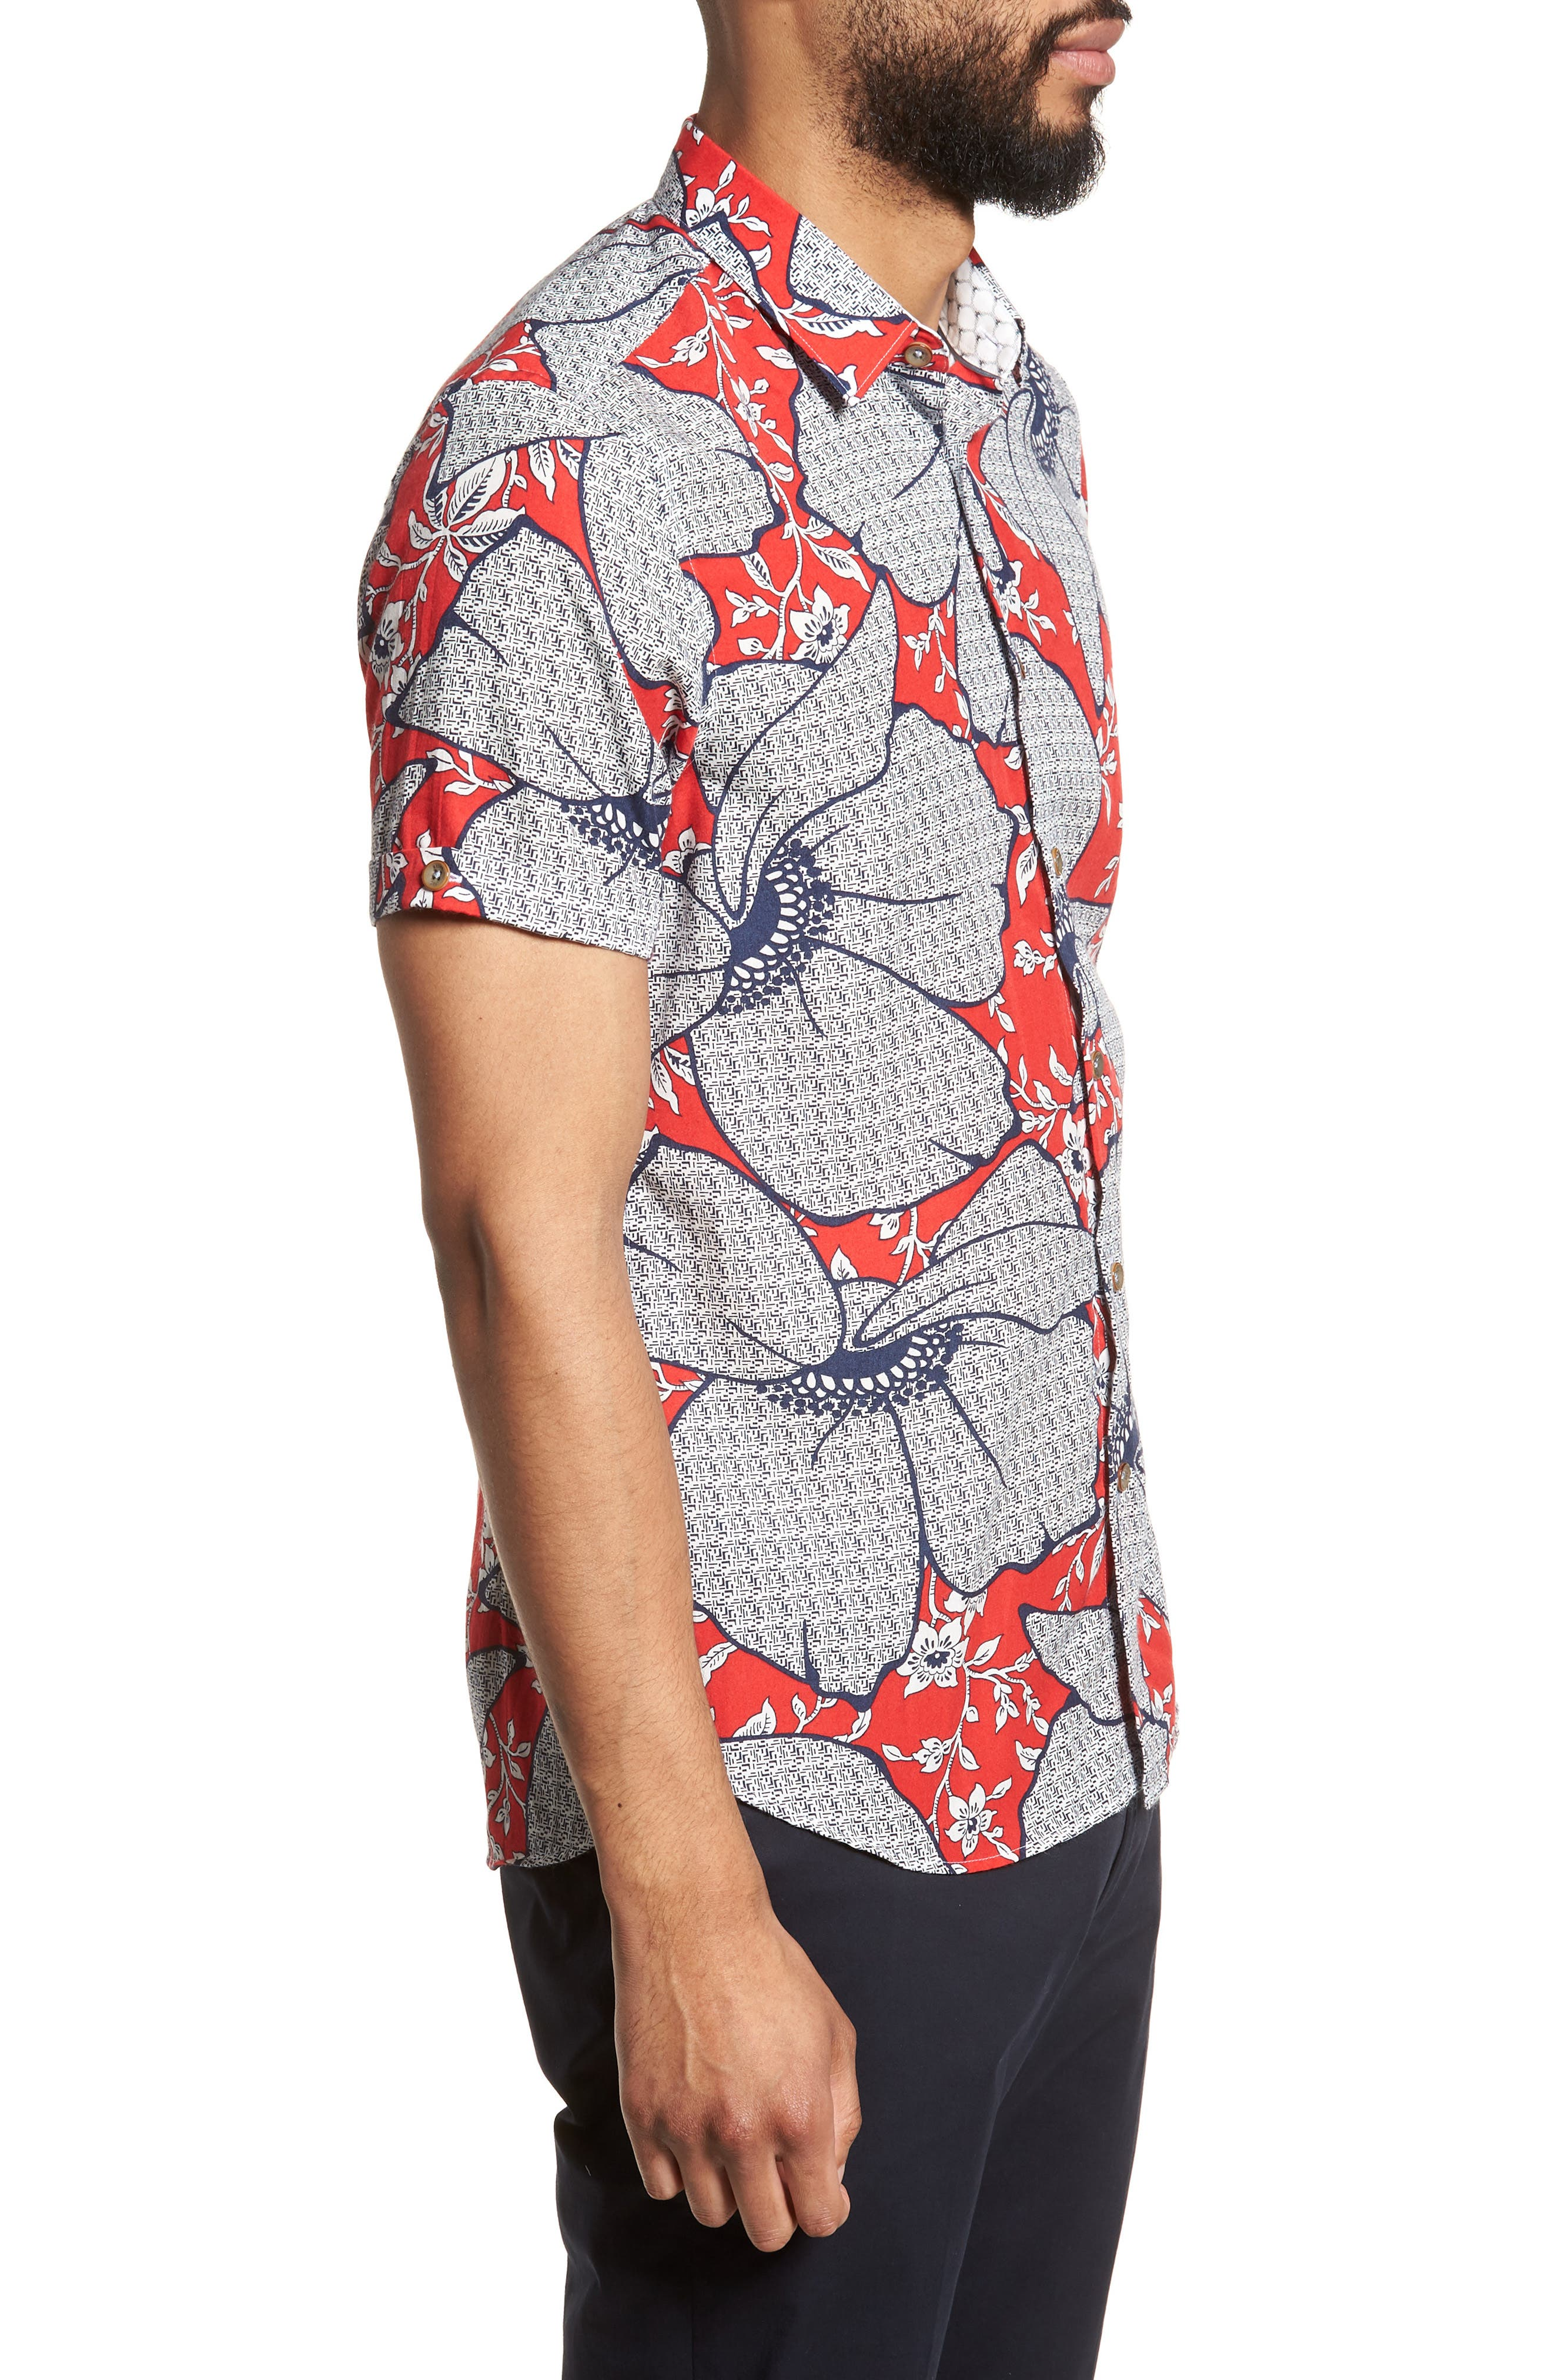 Sohot Trim Fit Floral Sport Shirt,                             Alternate thumbnail 4, color,                             Red